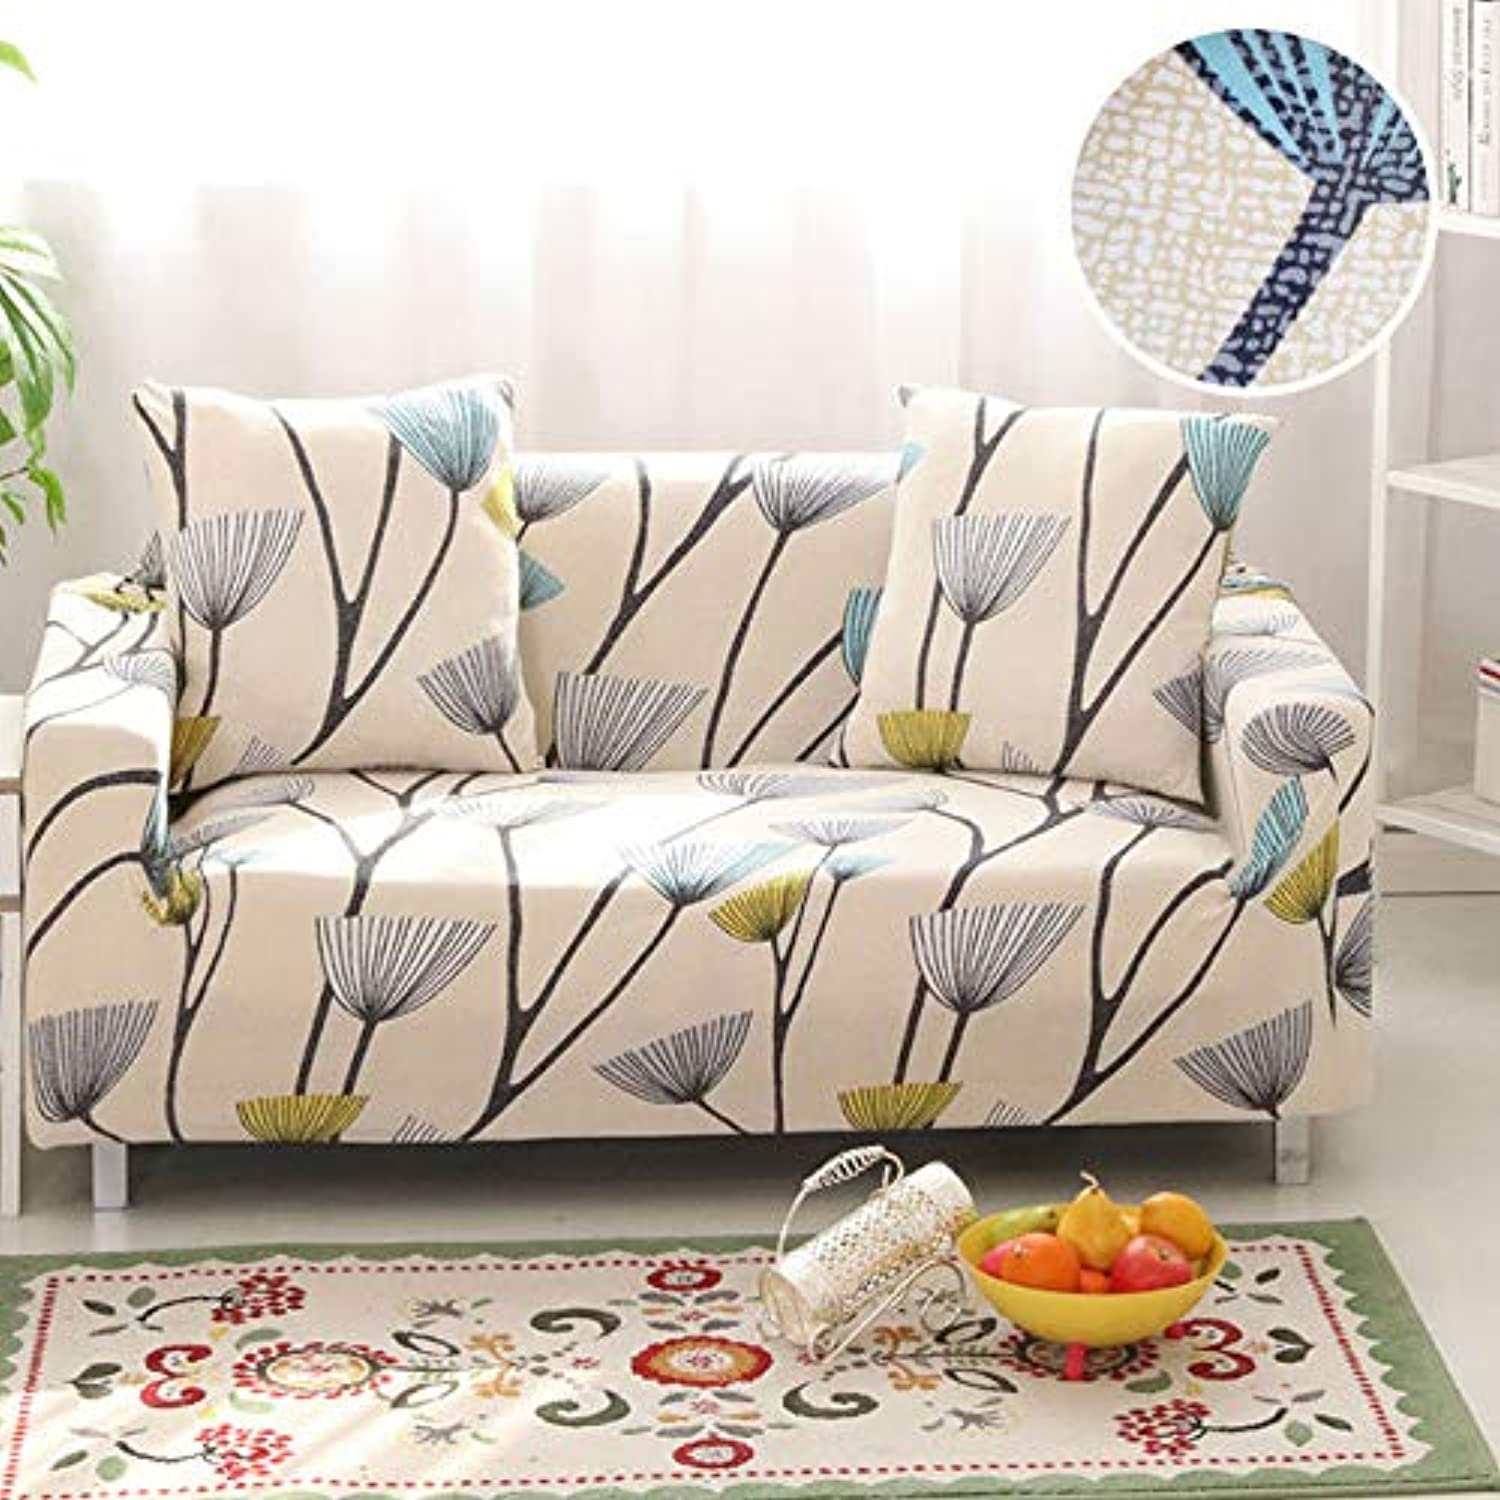 1 PC Sofa Cover Tight Wrap All-Inclusive Slip-Resistant Stretch Seat Covers Elastic Sofa Towel Single Two Three Four-Seater   color 19, 2-Seater 145-185cm